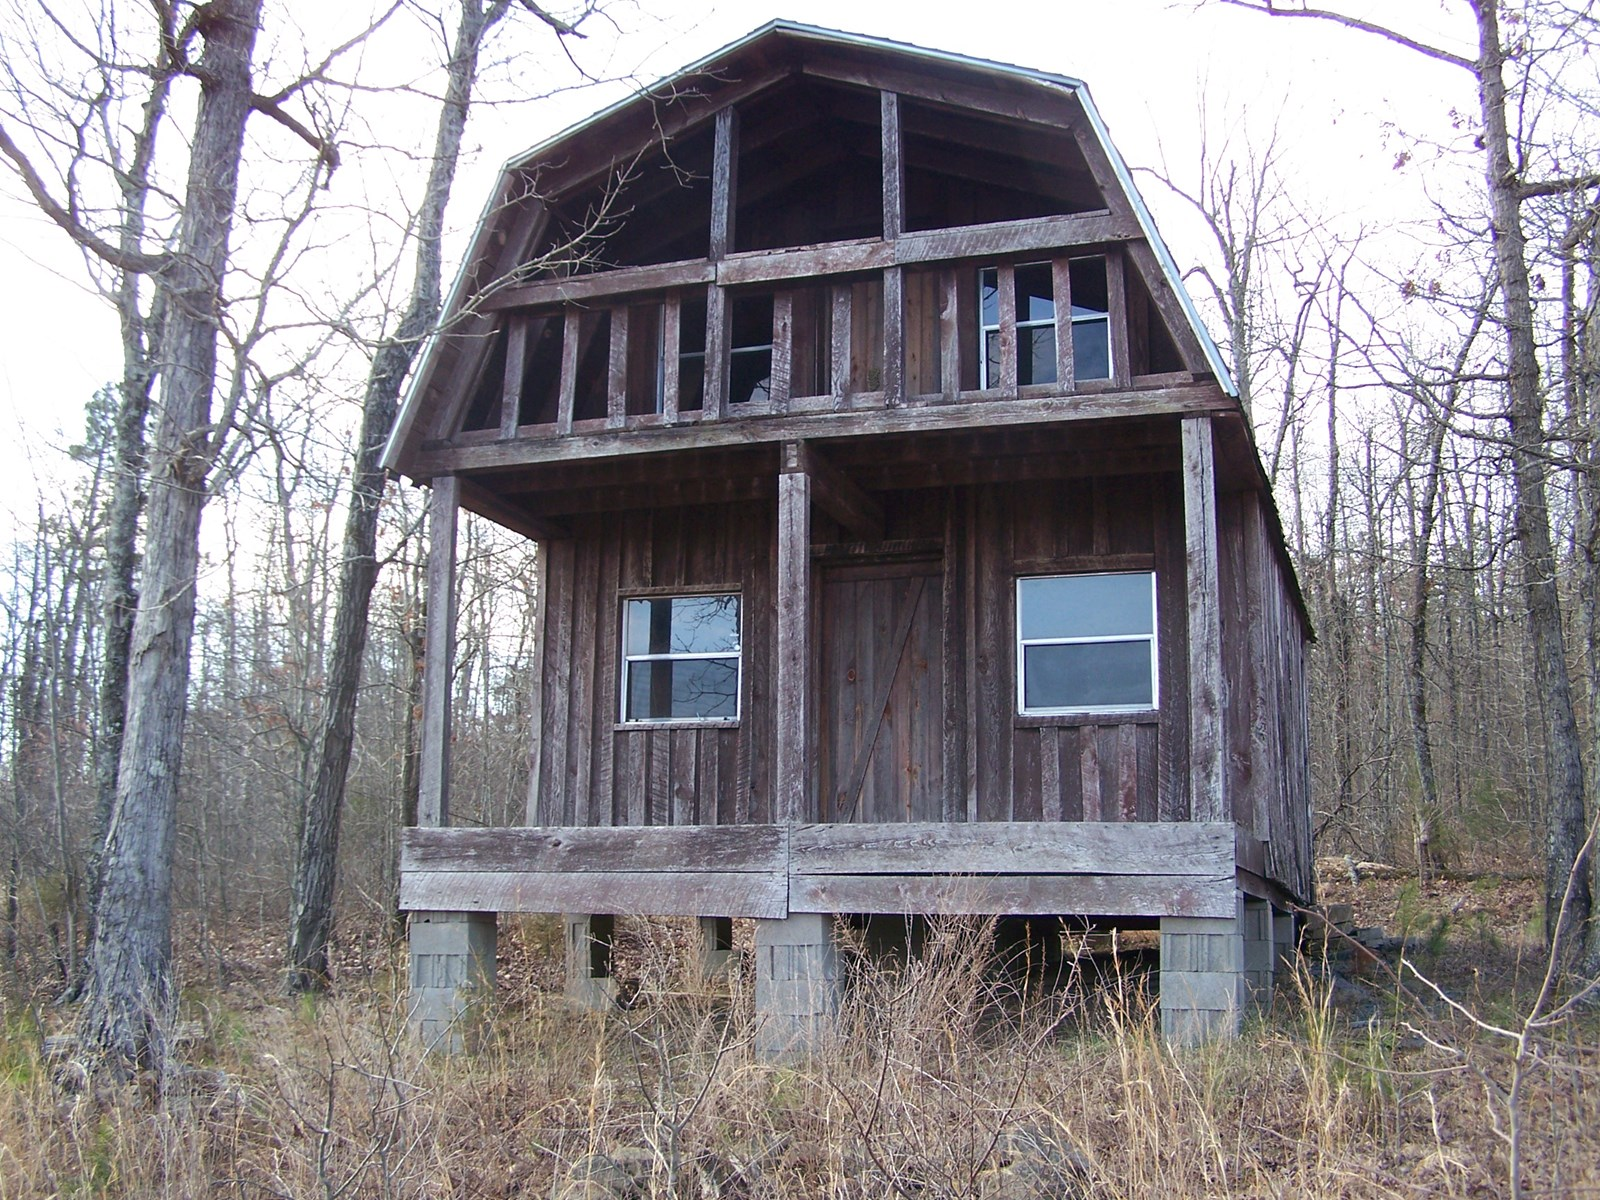 Rustic Hunting Cabin on 10 AC in Arkansas Ozarks